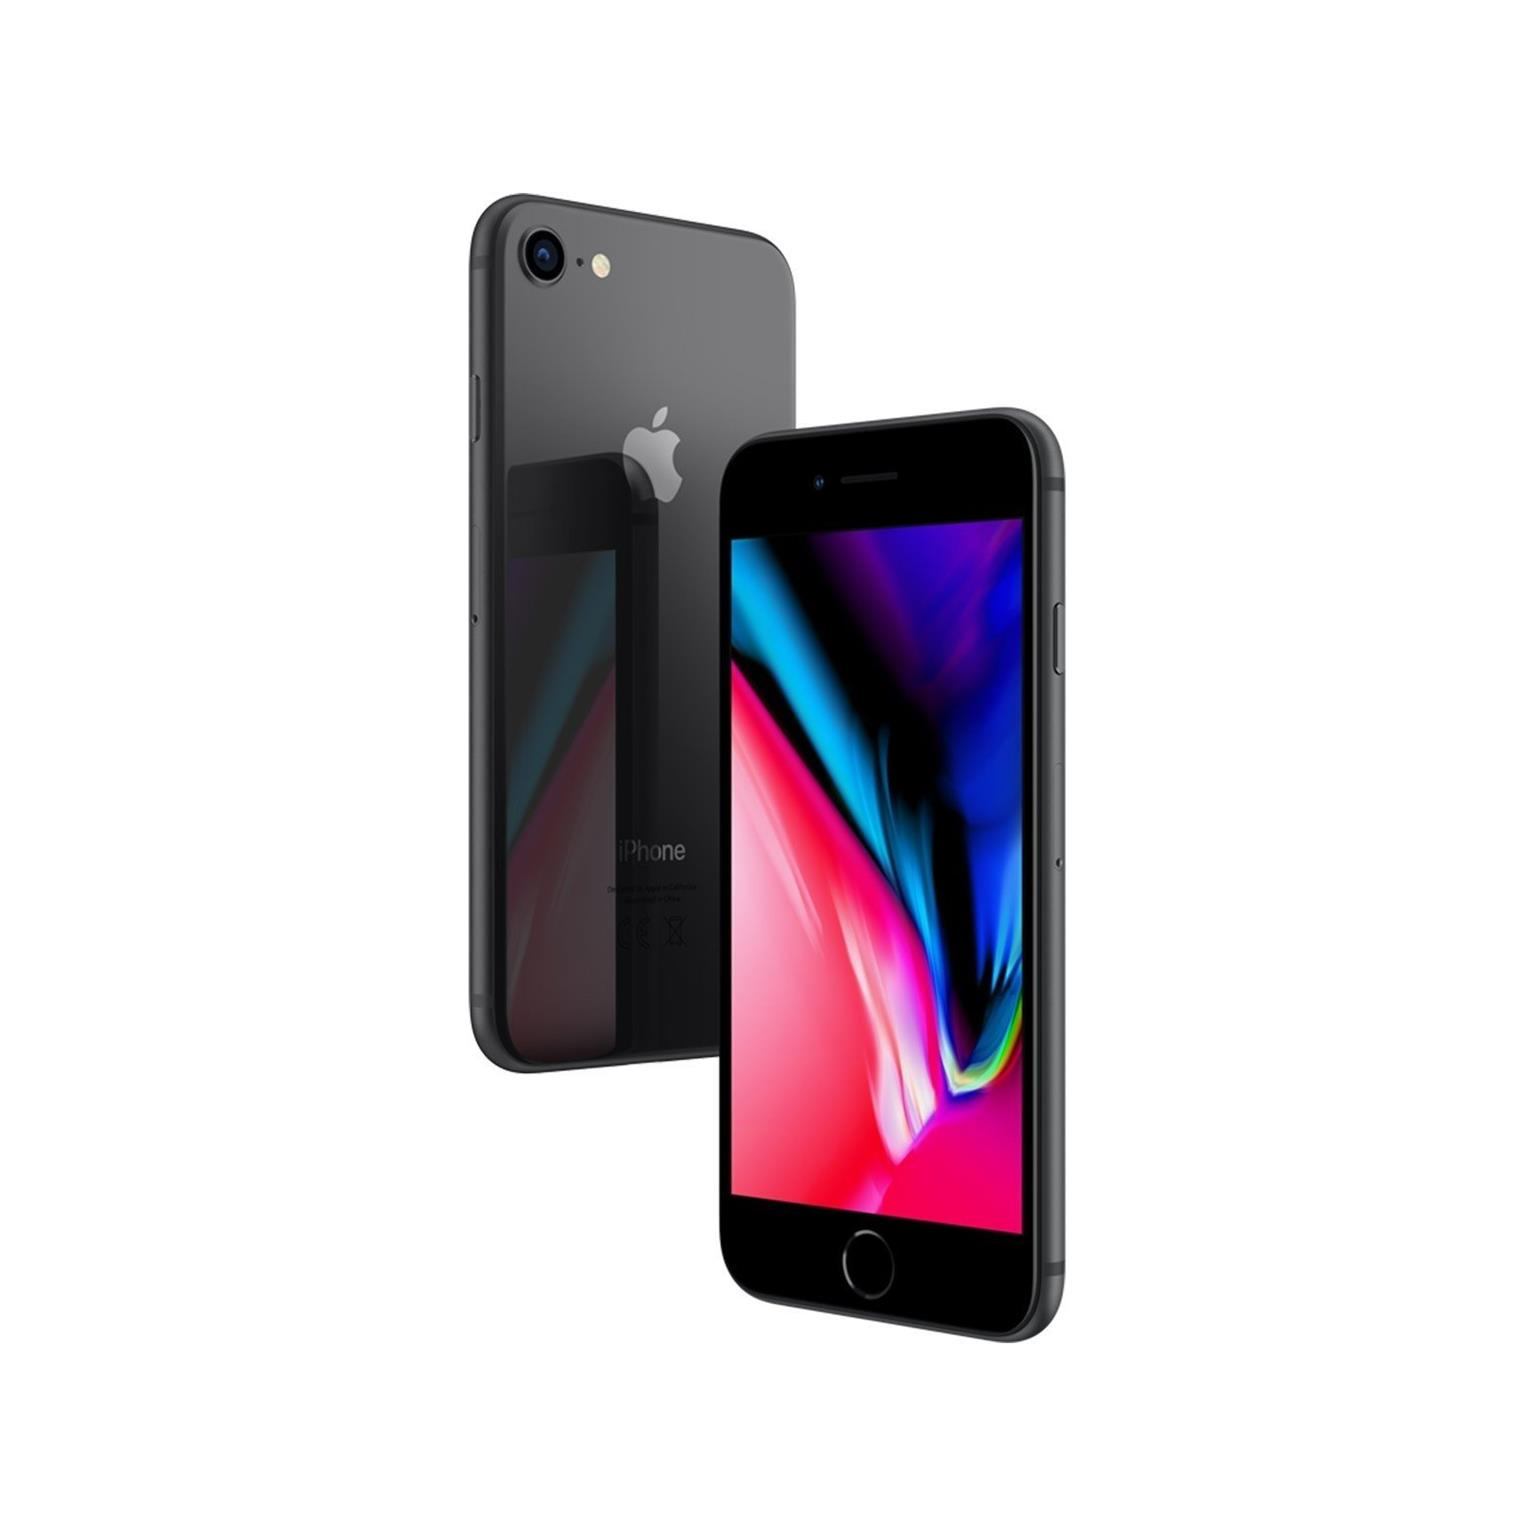 Apple iPhone 8 (64GB, 2017, Space Gray) - Pre Owned